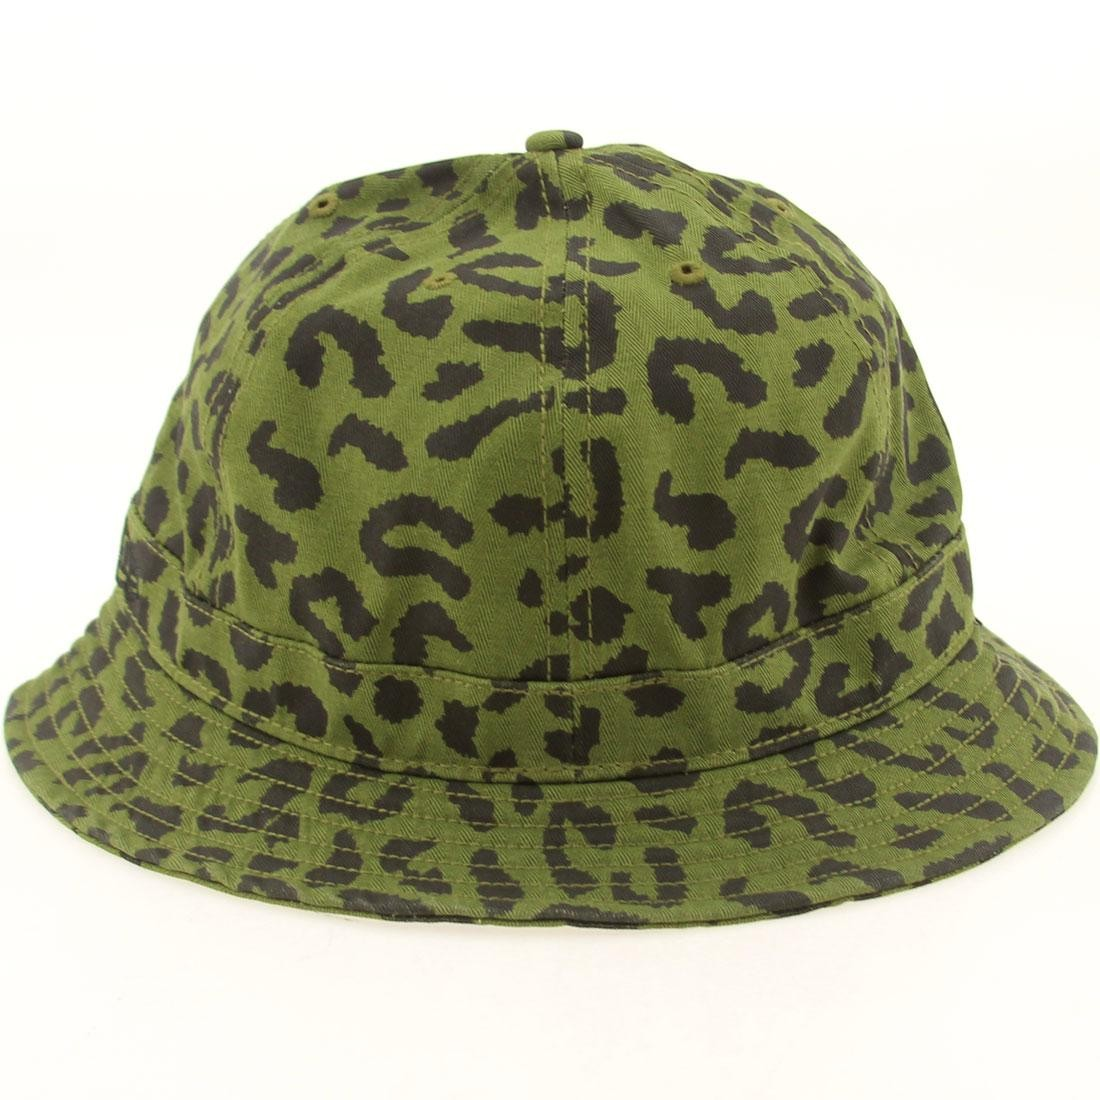 Undefeated Combat New Era Fitted Bucket Hat (olive camo) f752816adb2